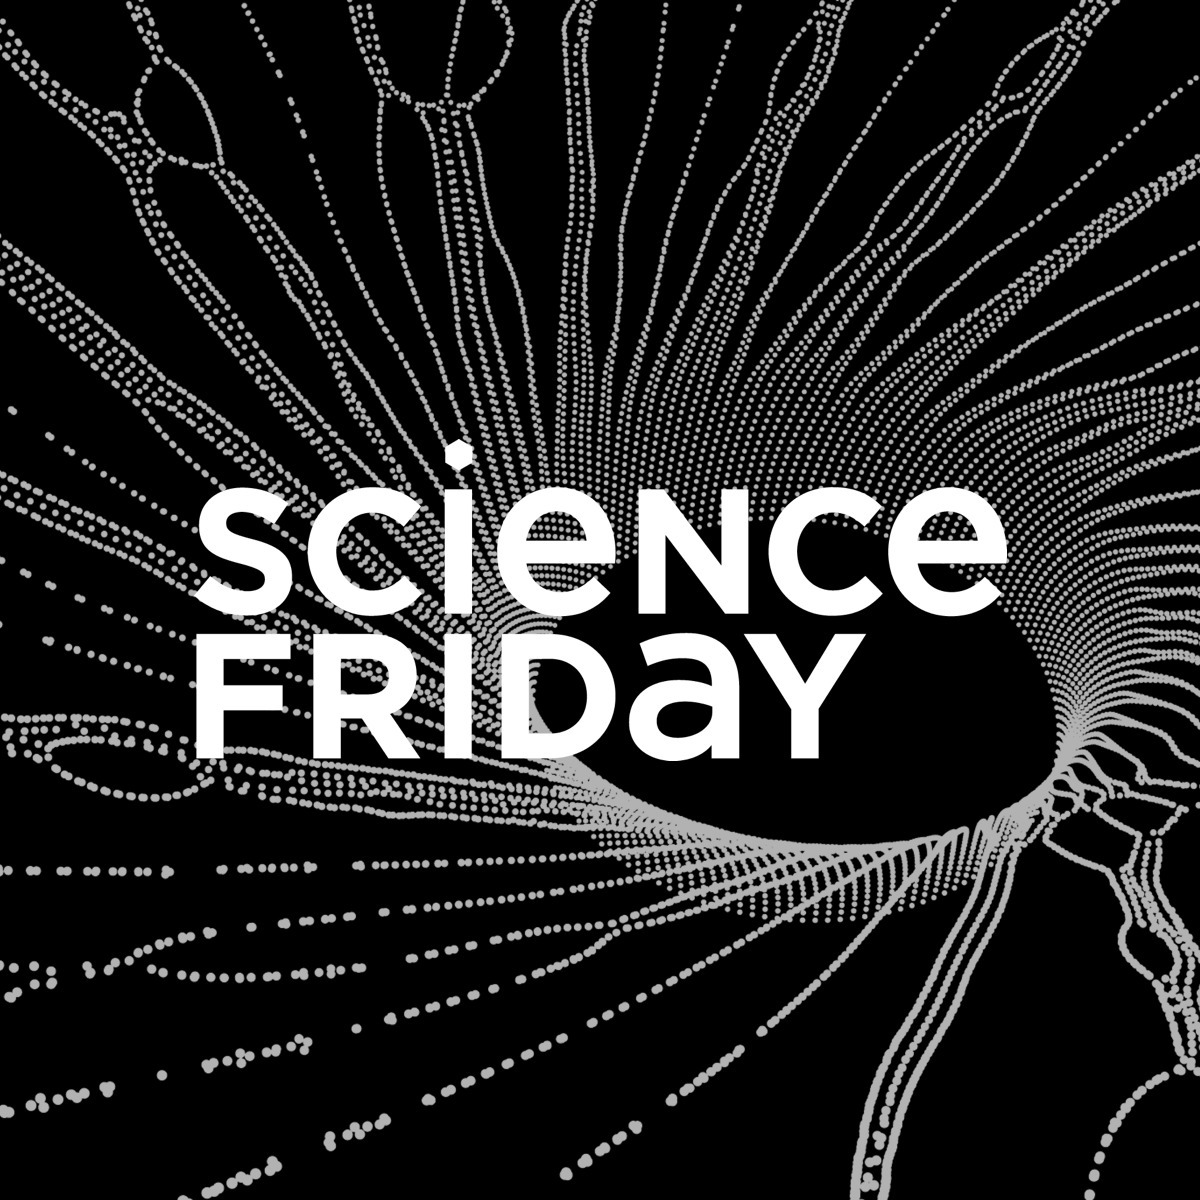 Science Friday Reads Stephen Hawking